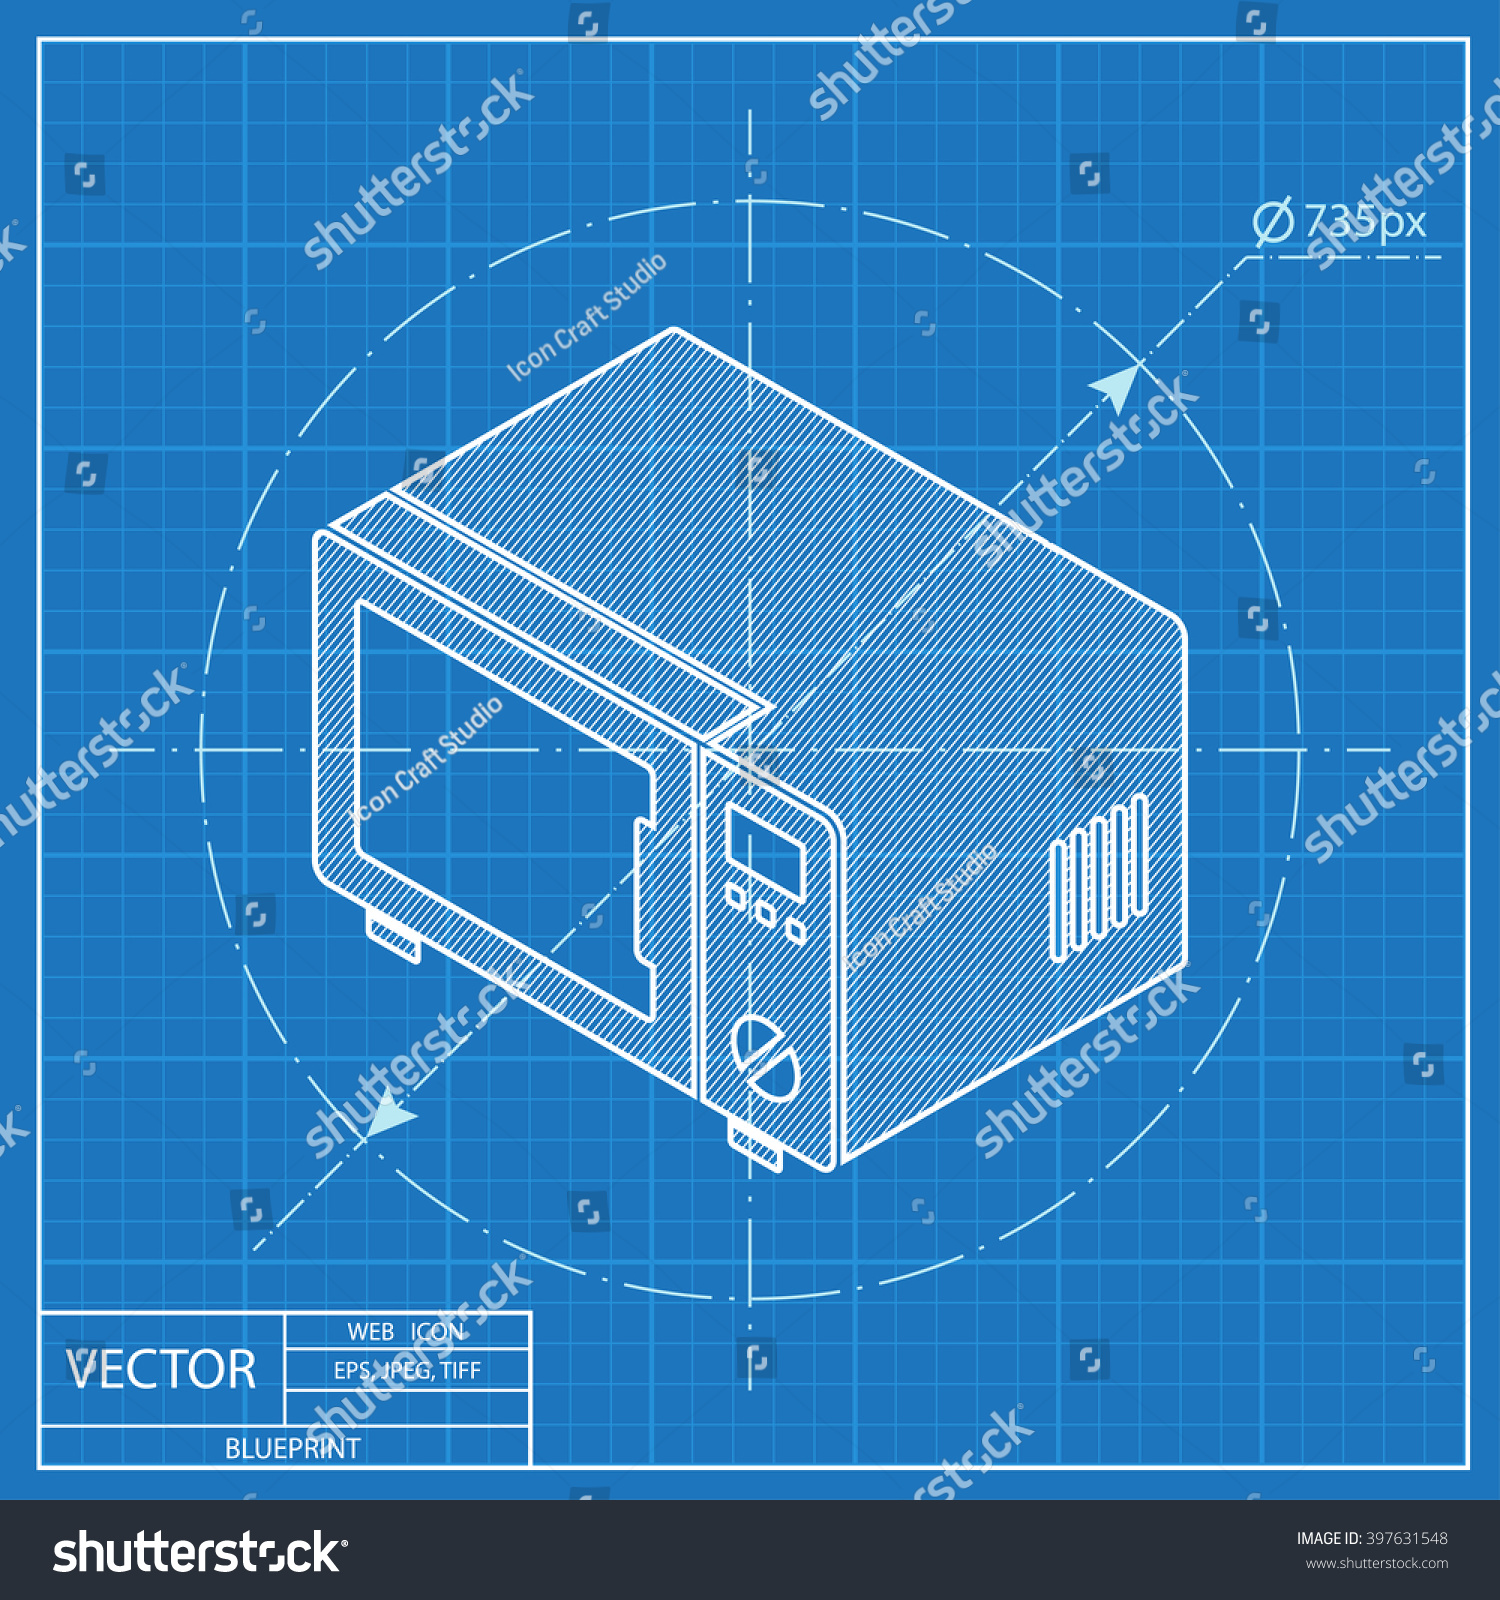 Microwave Oven Isometric 3 D Blueprint Icon Stock Vector (Royalty ...